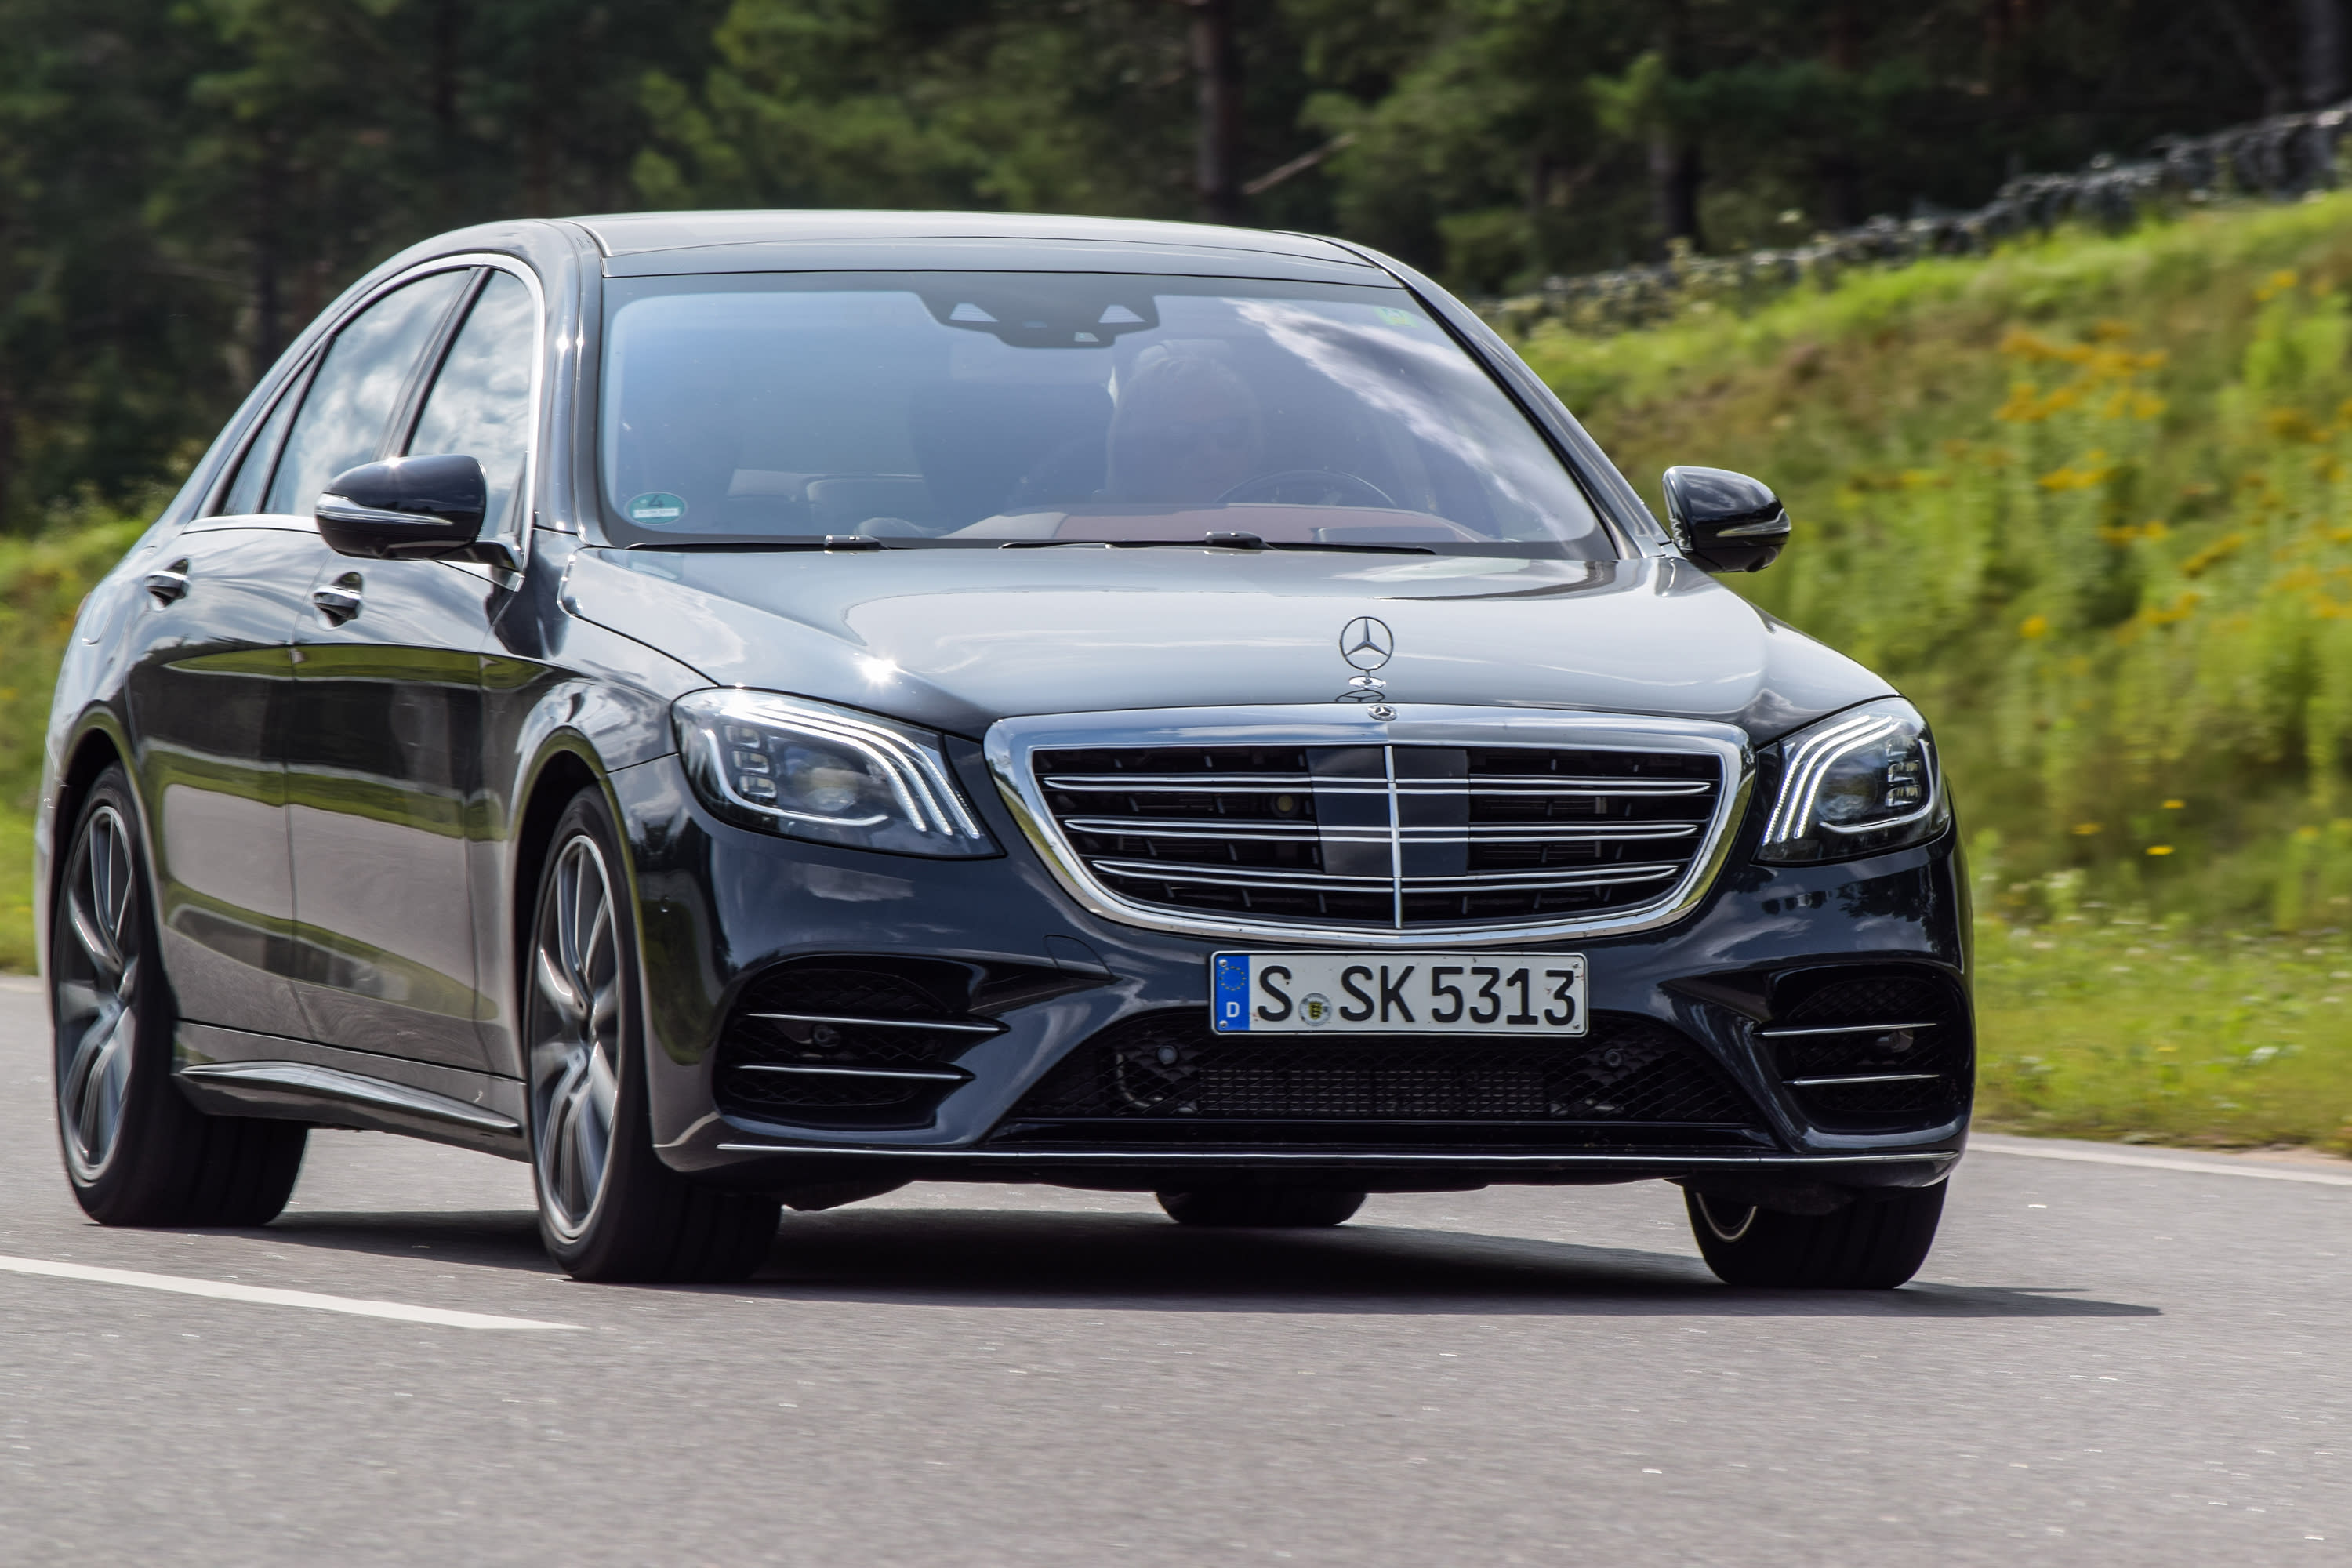 2018 S Class Mercedes May Have Small Brake Systems